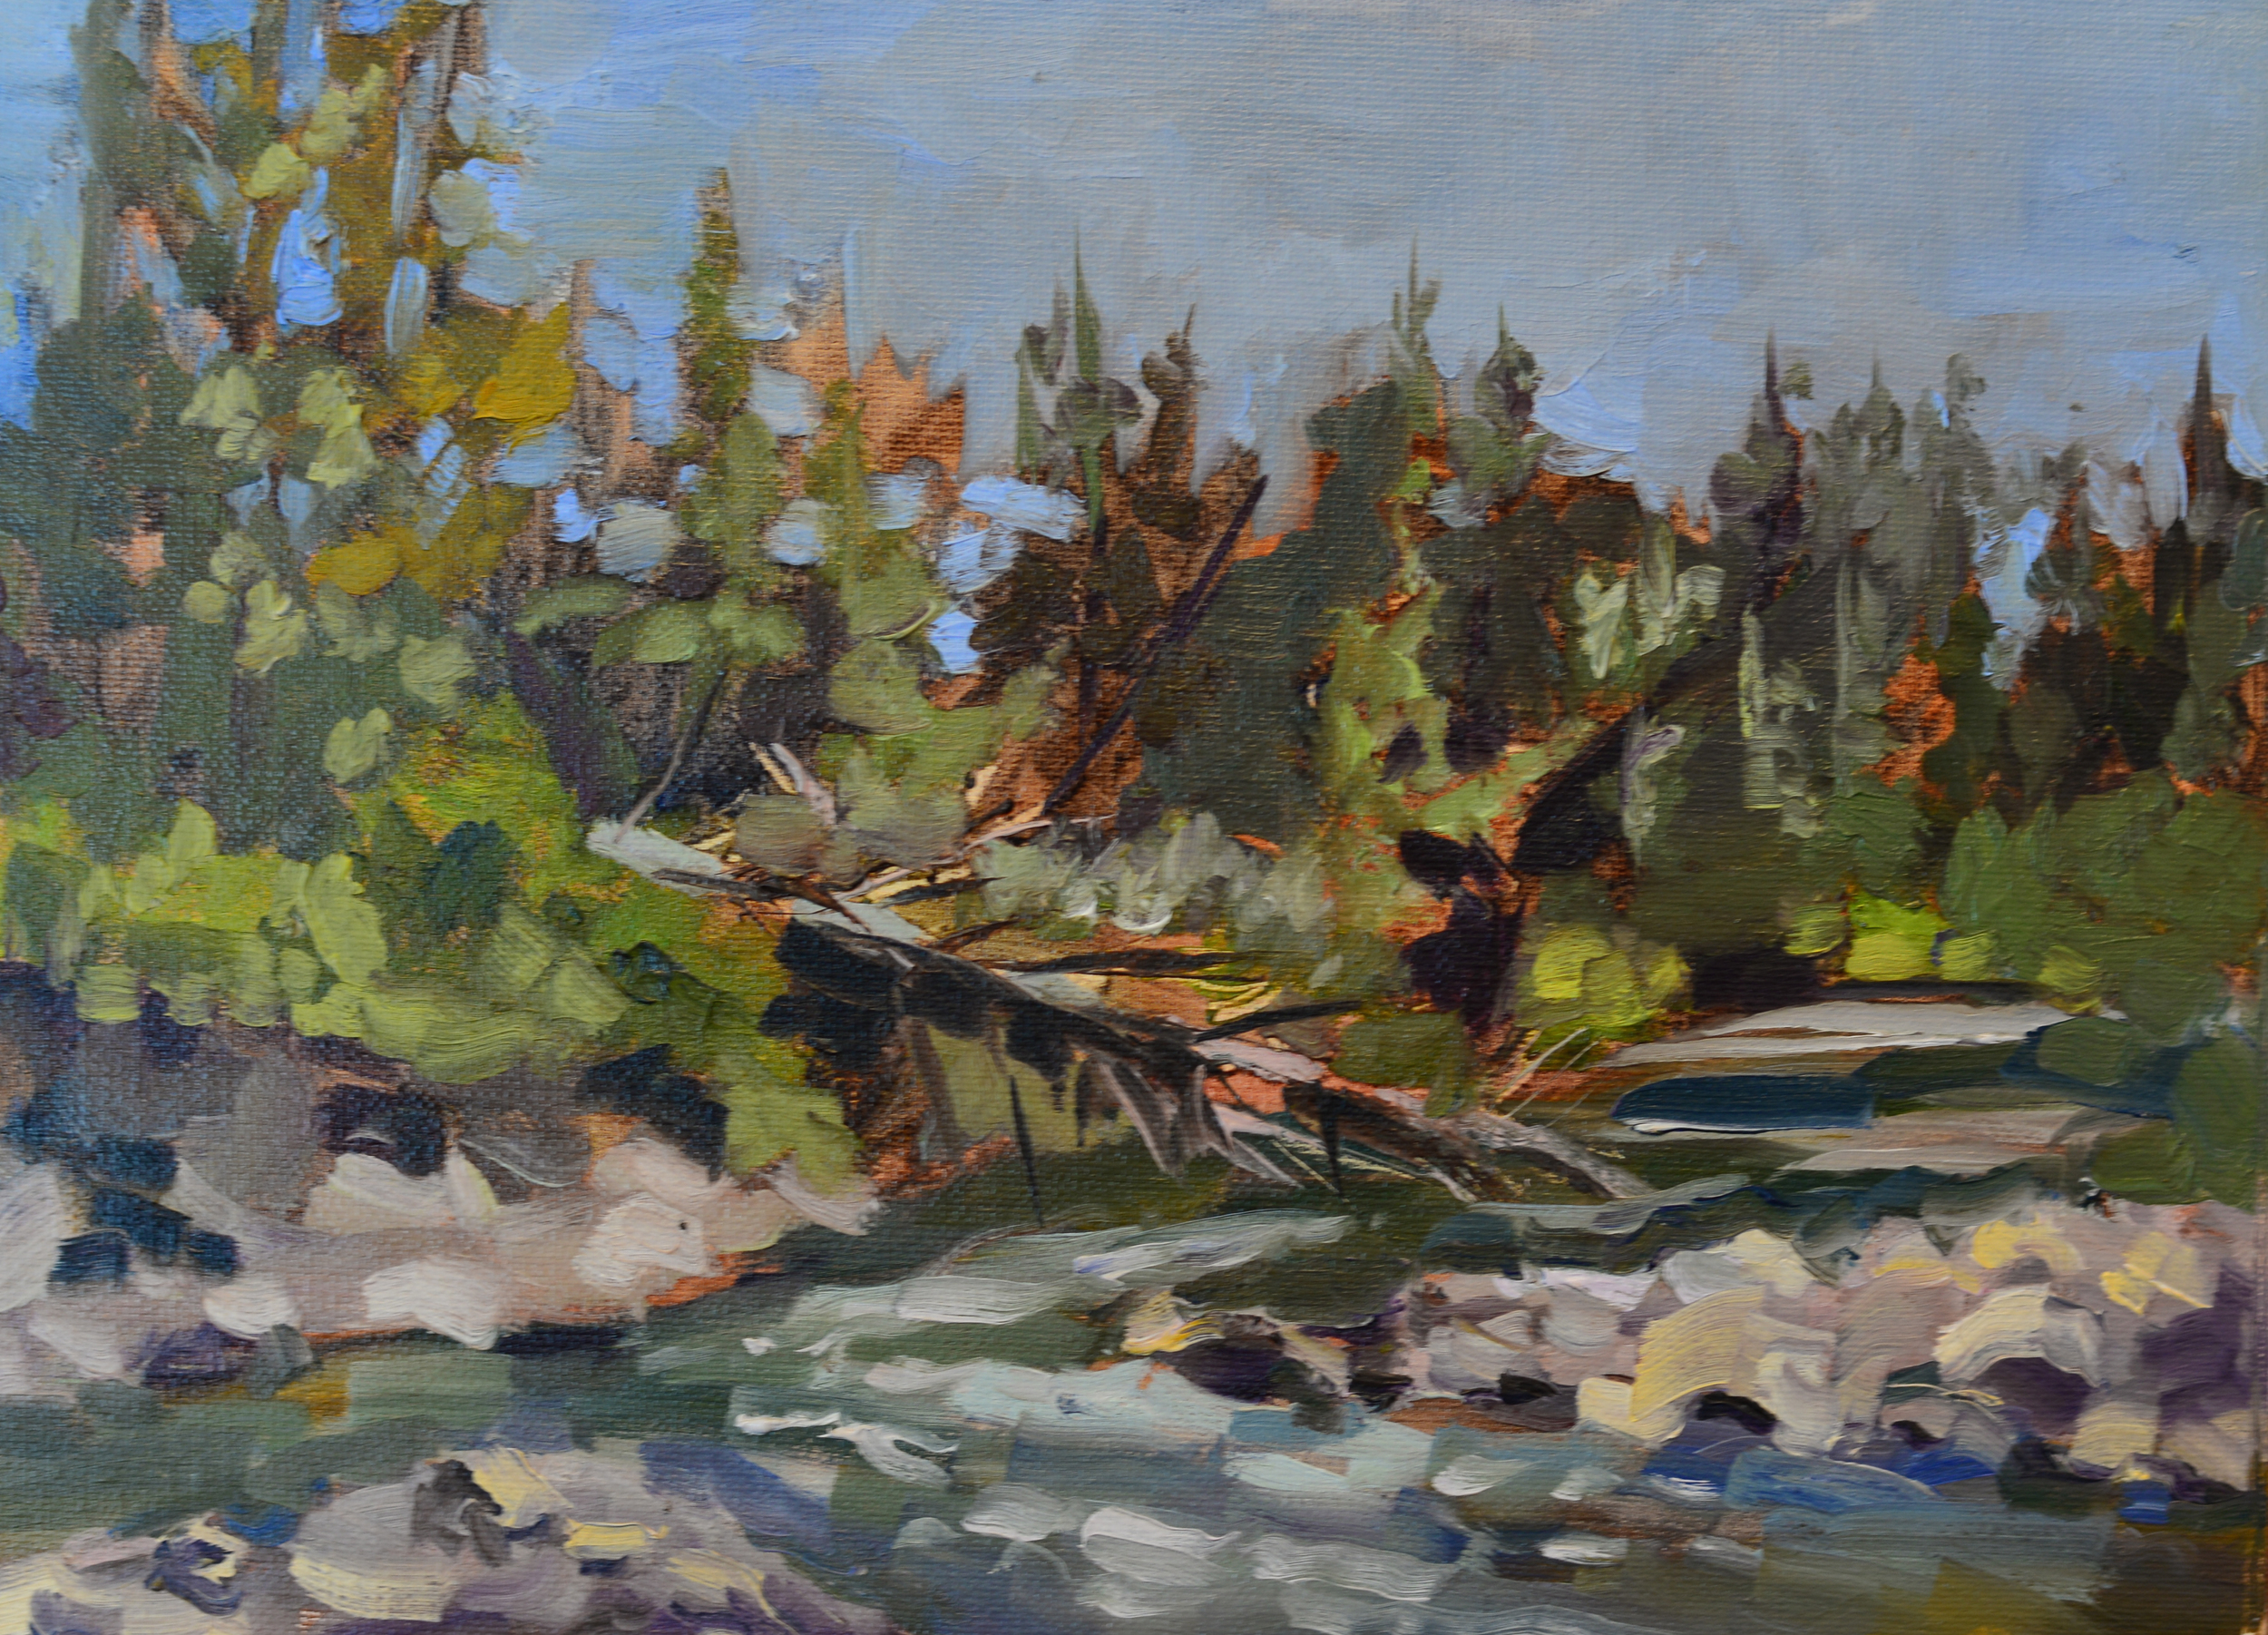 Evening at Fish Creek 2 - 9x12 oil